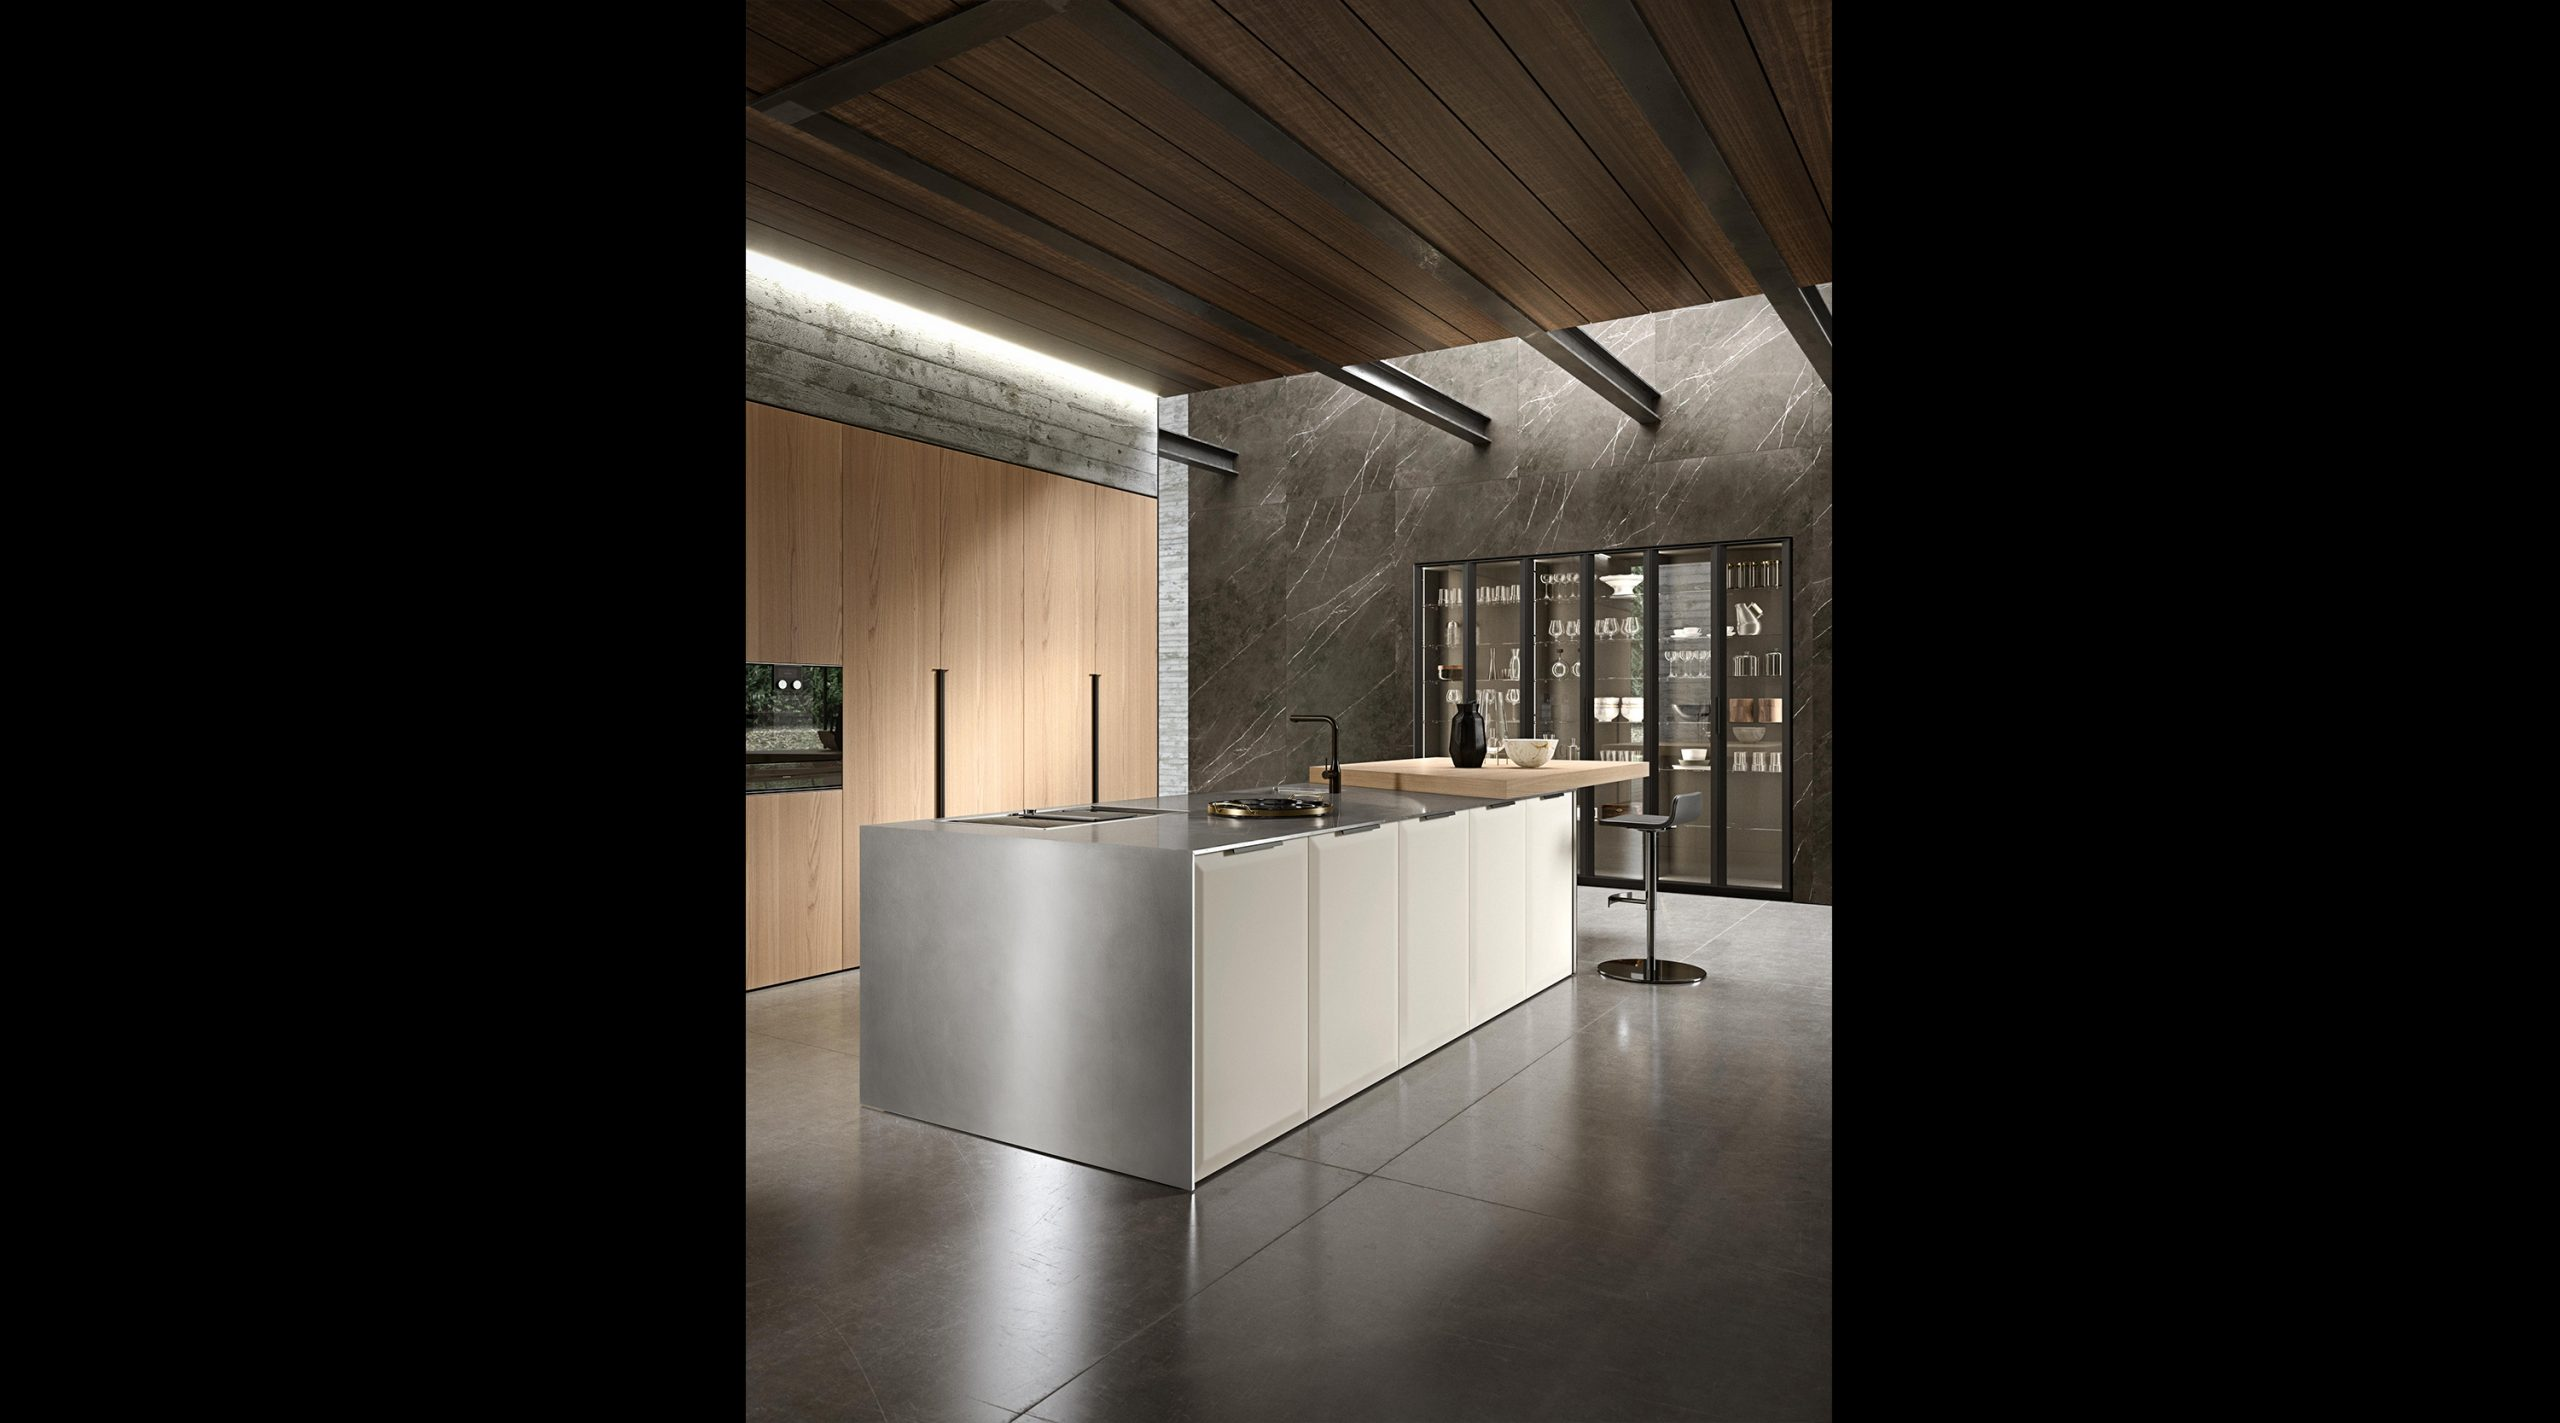 Aster Cucine Launches Their Latest Range Of Kitchen Brera Concept Analysis